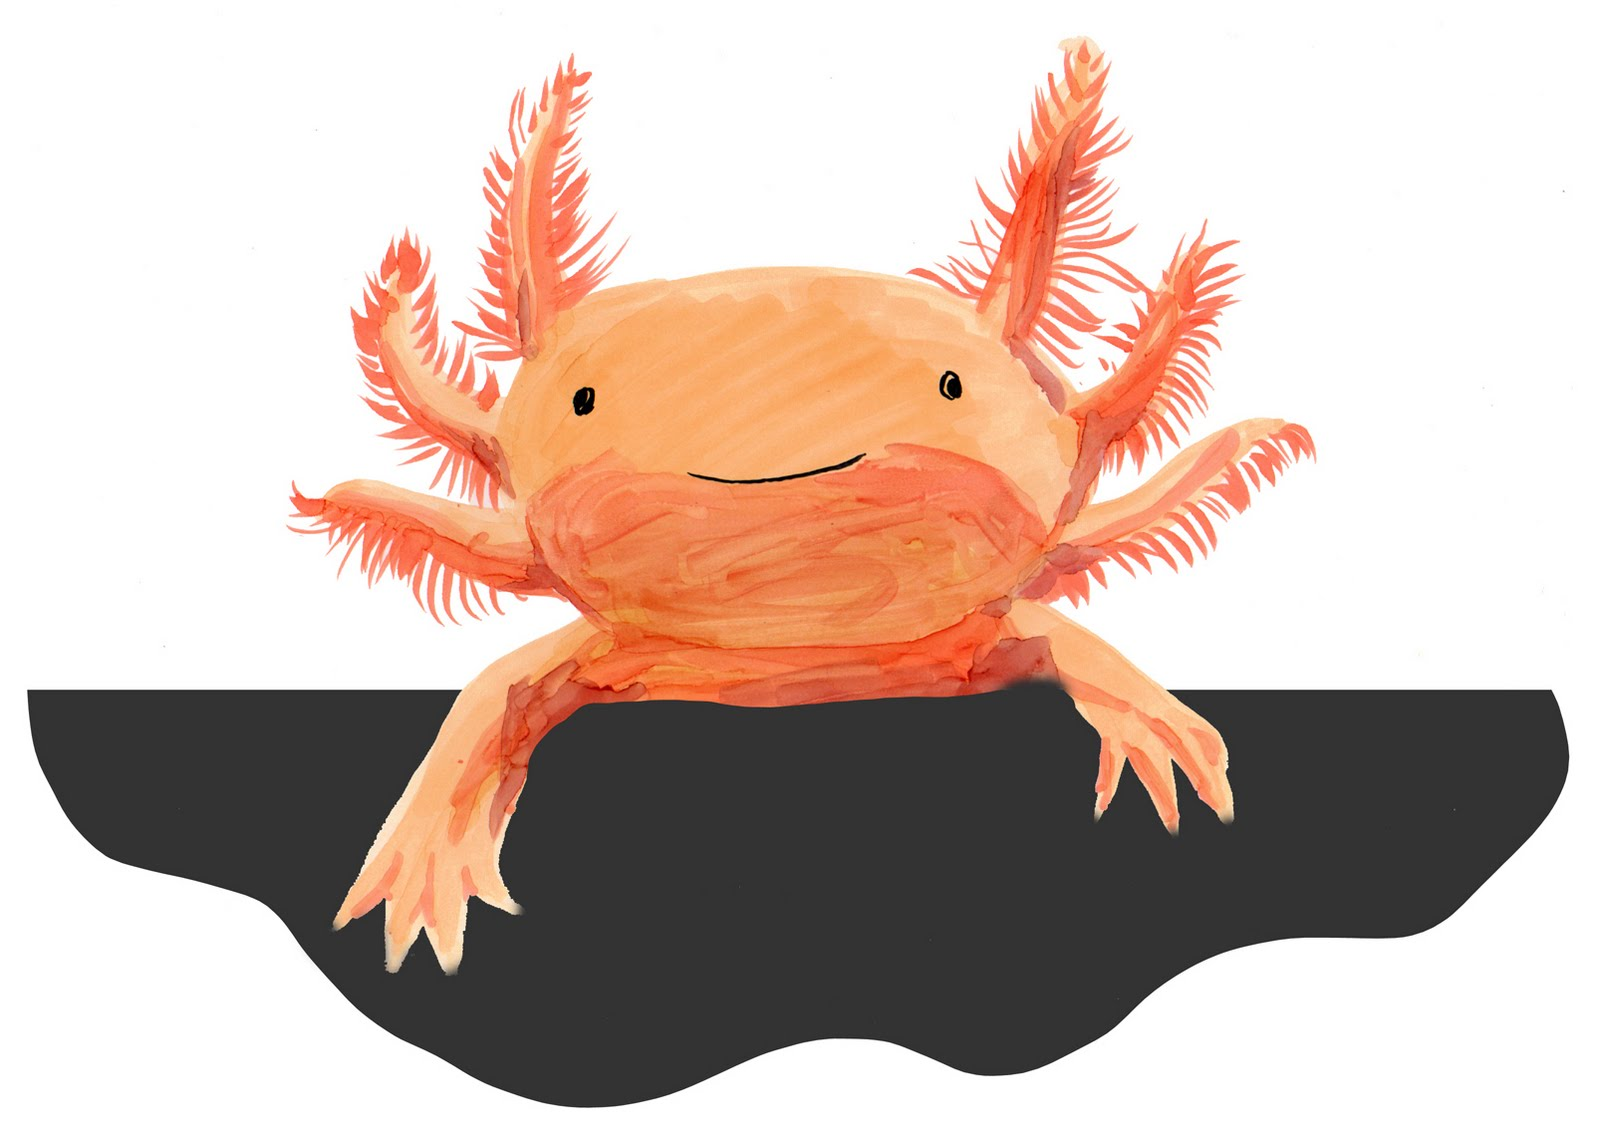 Axolotl clipart Axolotl illustration photo#3 Illustration Axolotl